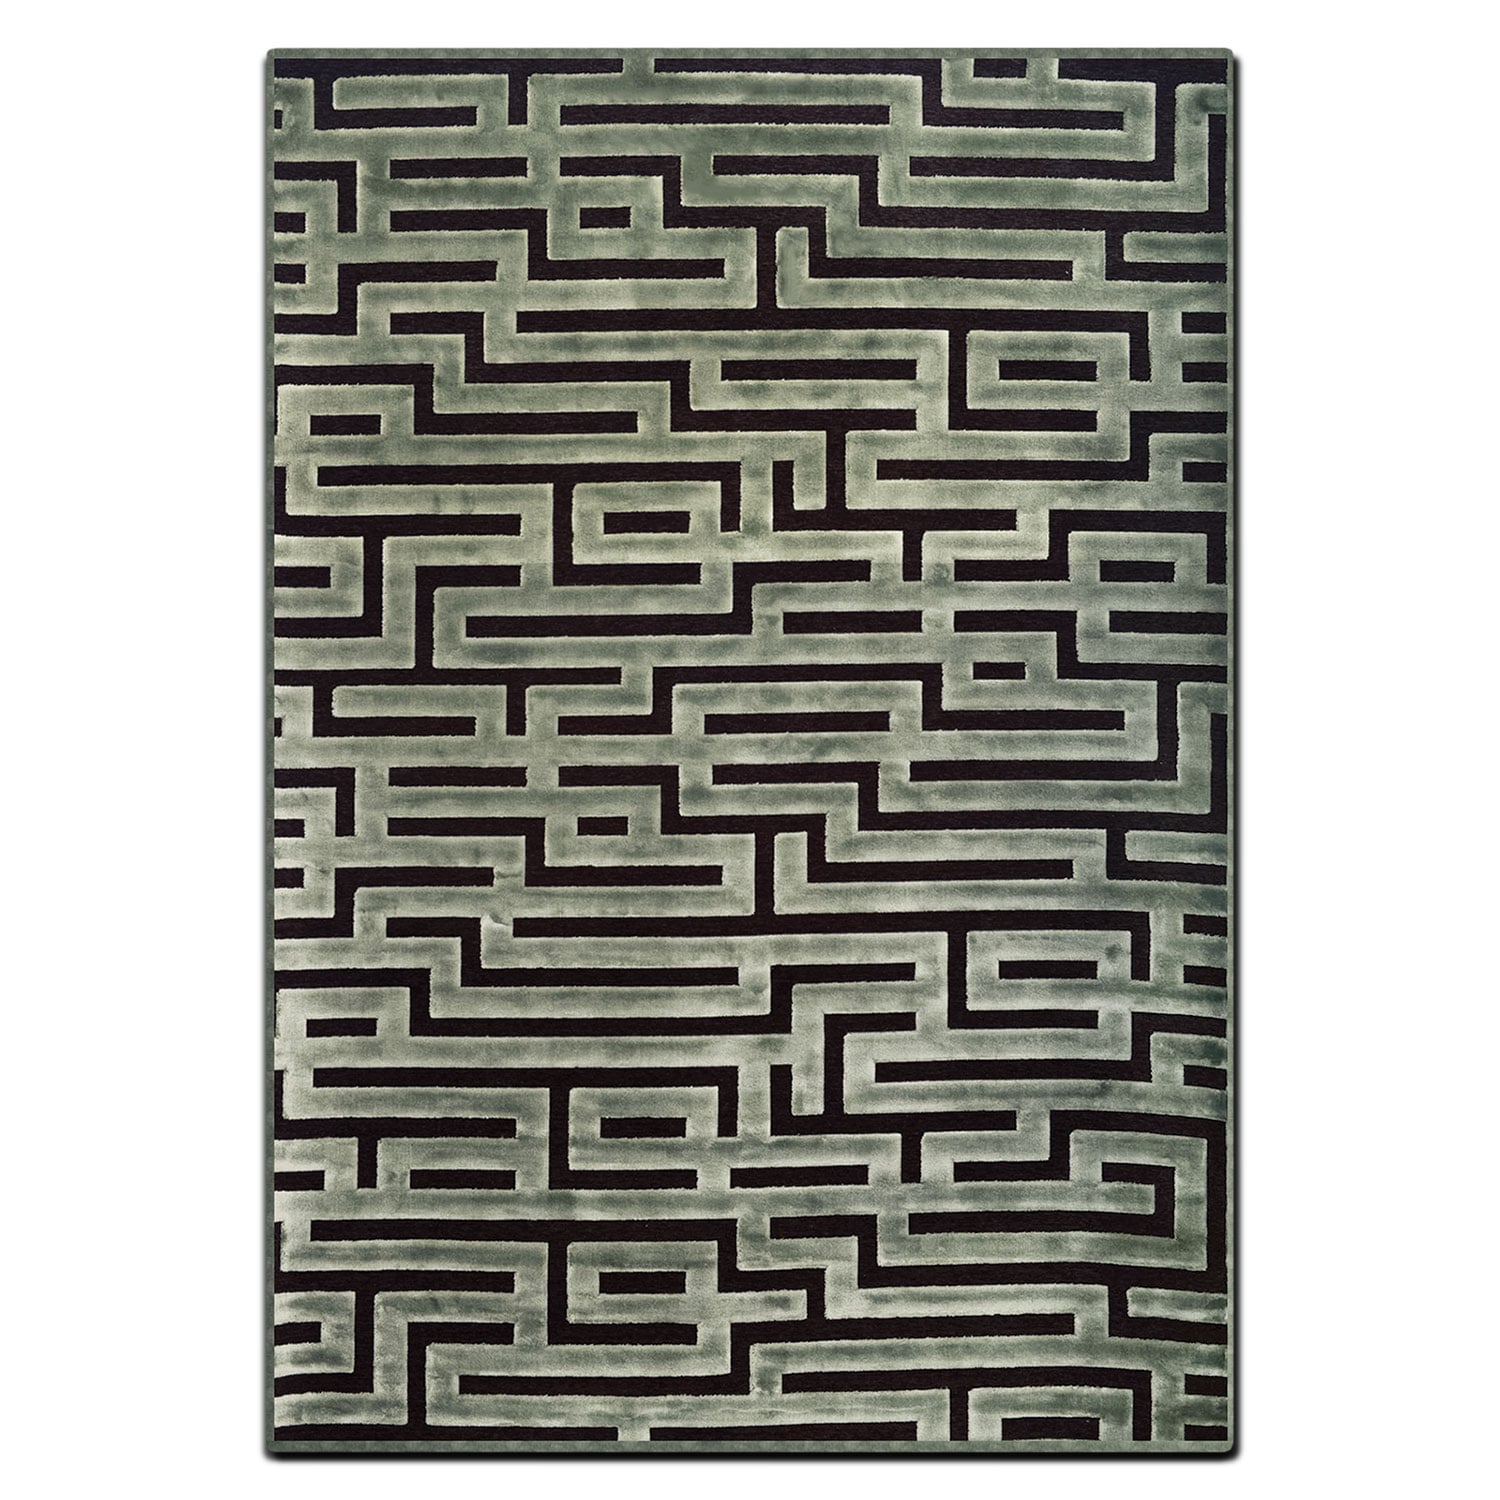 Rugs - Napa 8' x 10' Area Rug - Seafoam and Charcoal